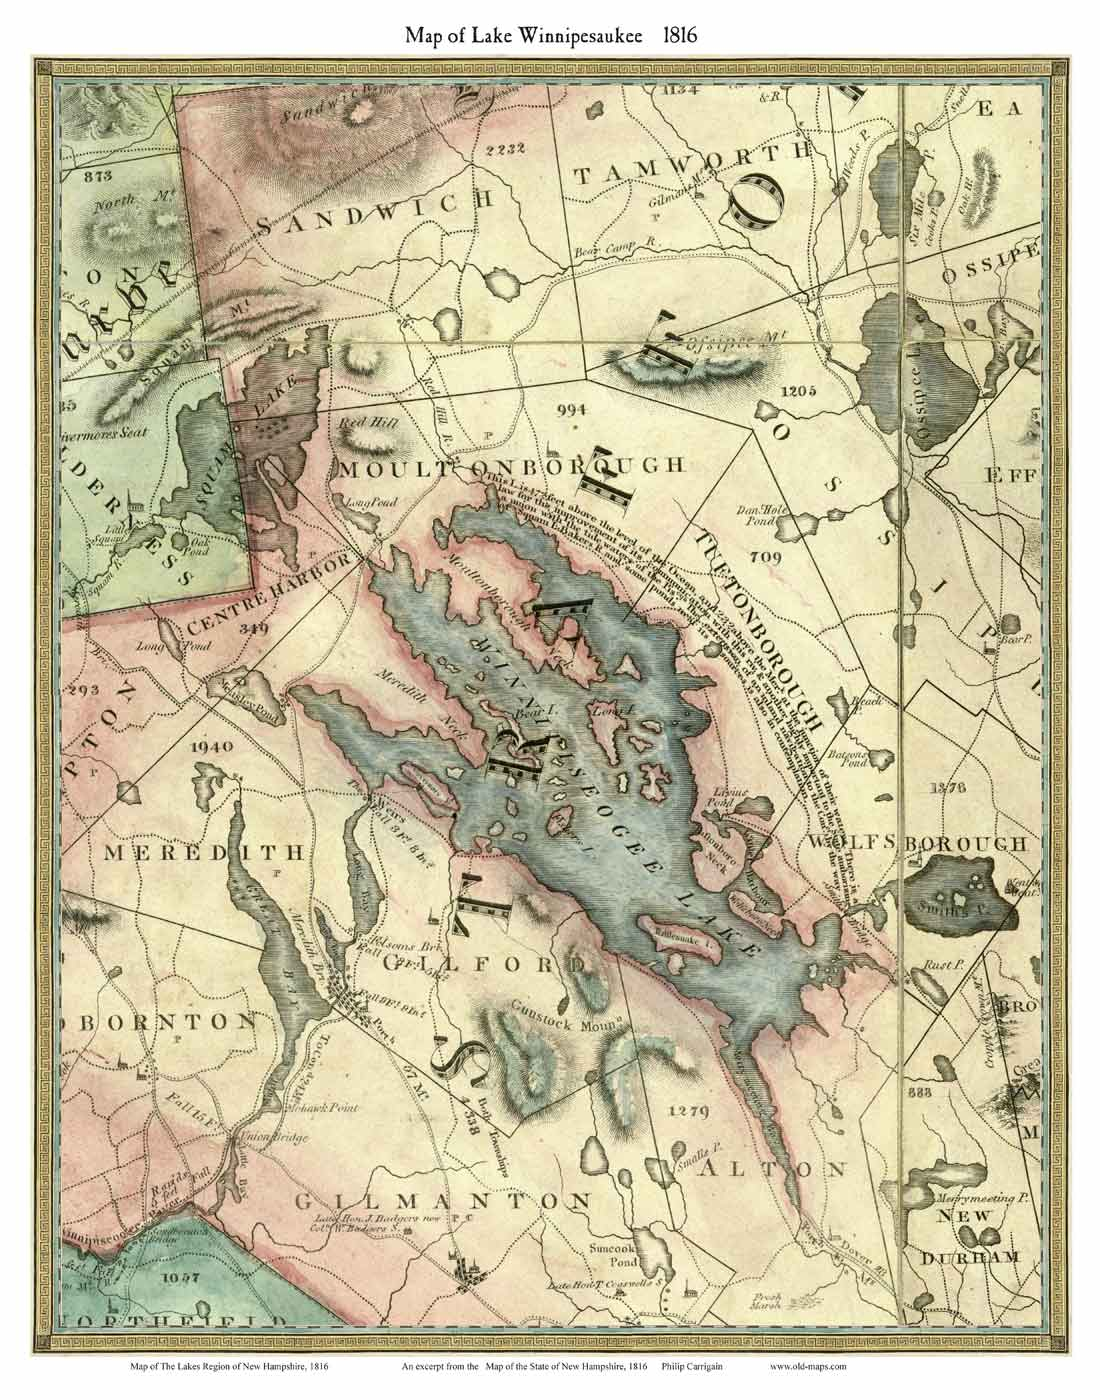 Lake Winnipesaukee New Hampshire 1816 Old Map Custom Print OLD MAPS